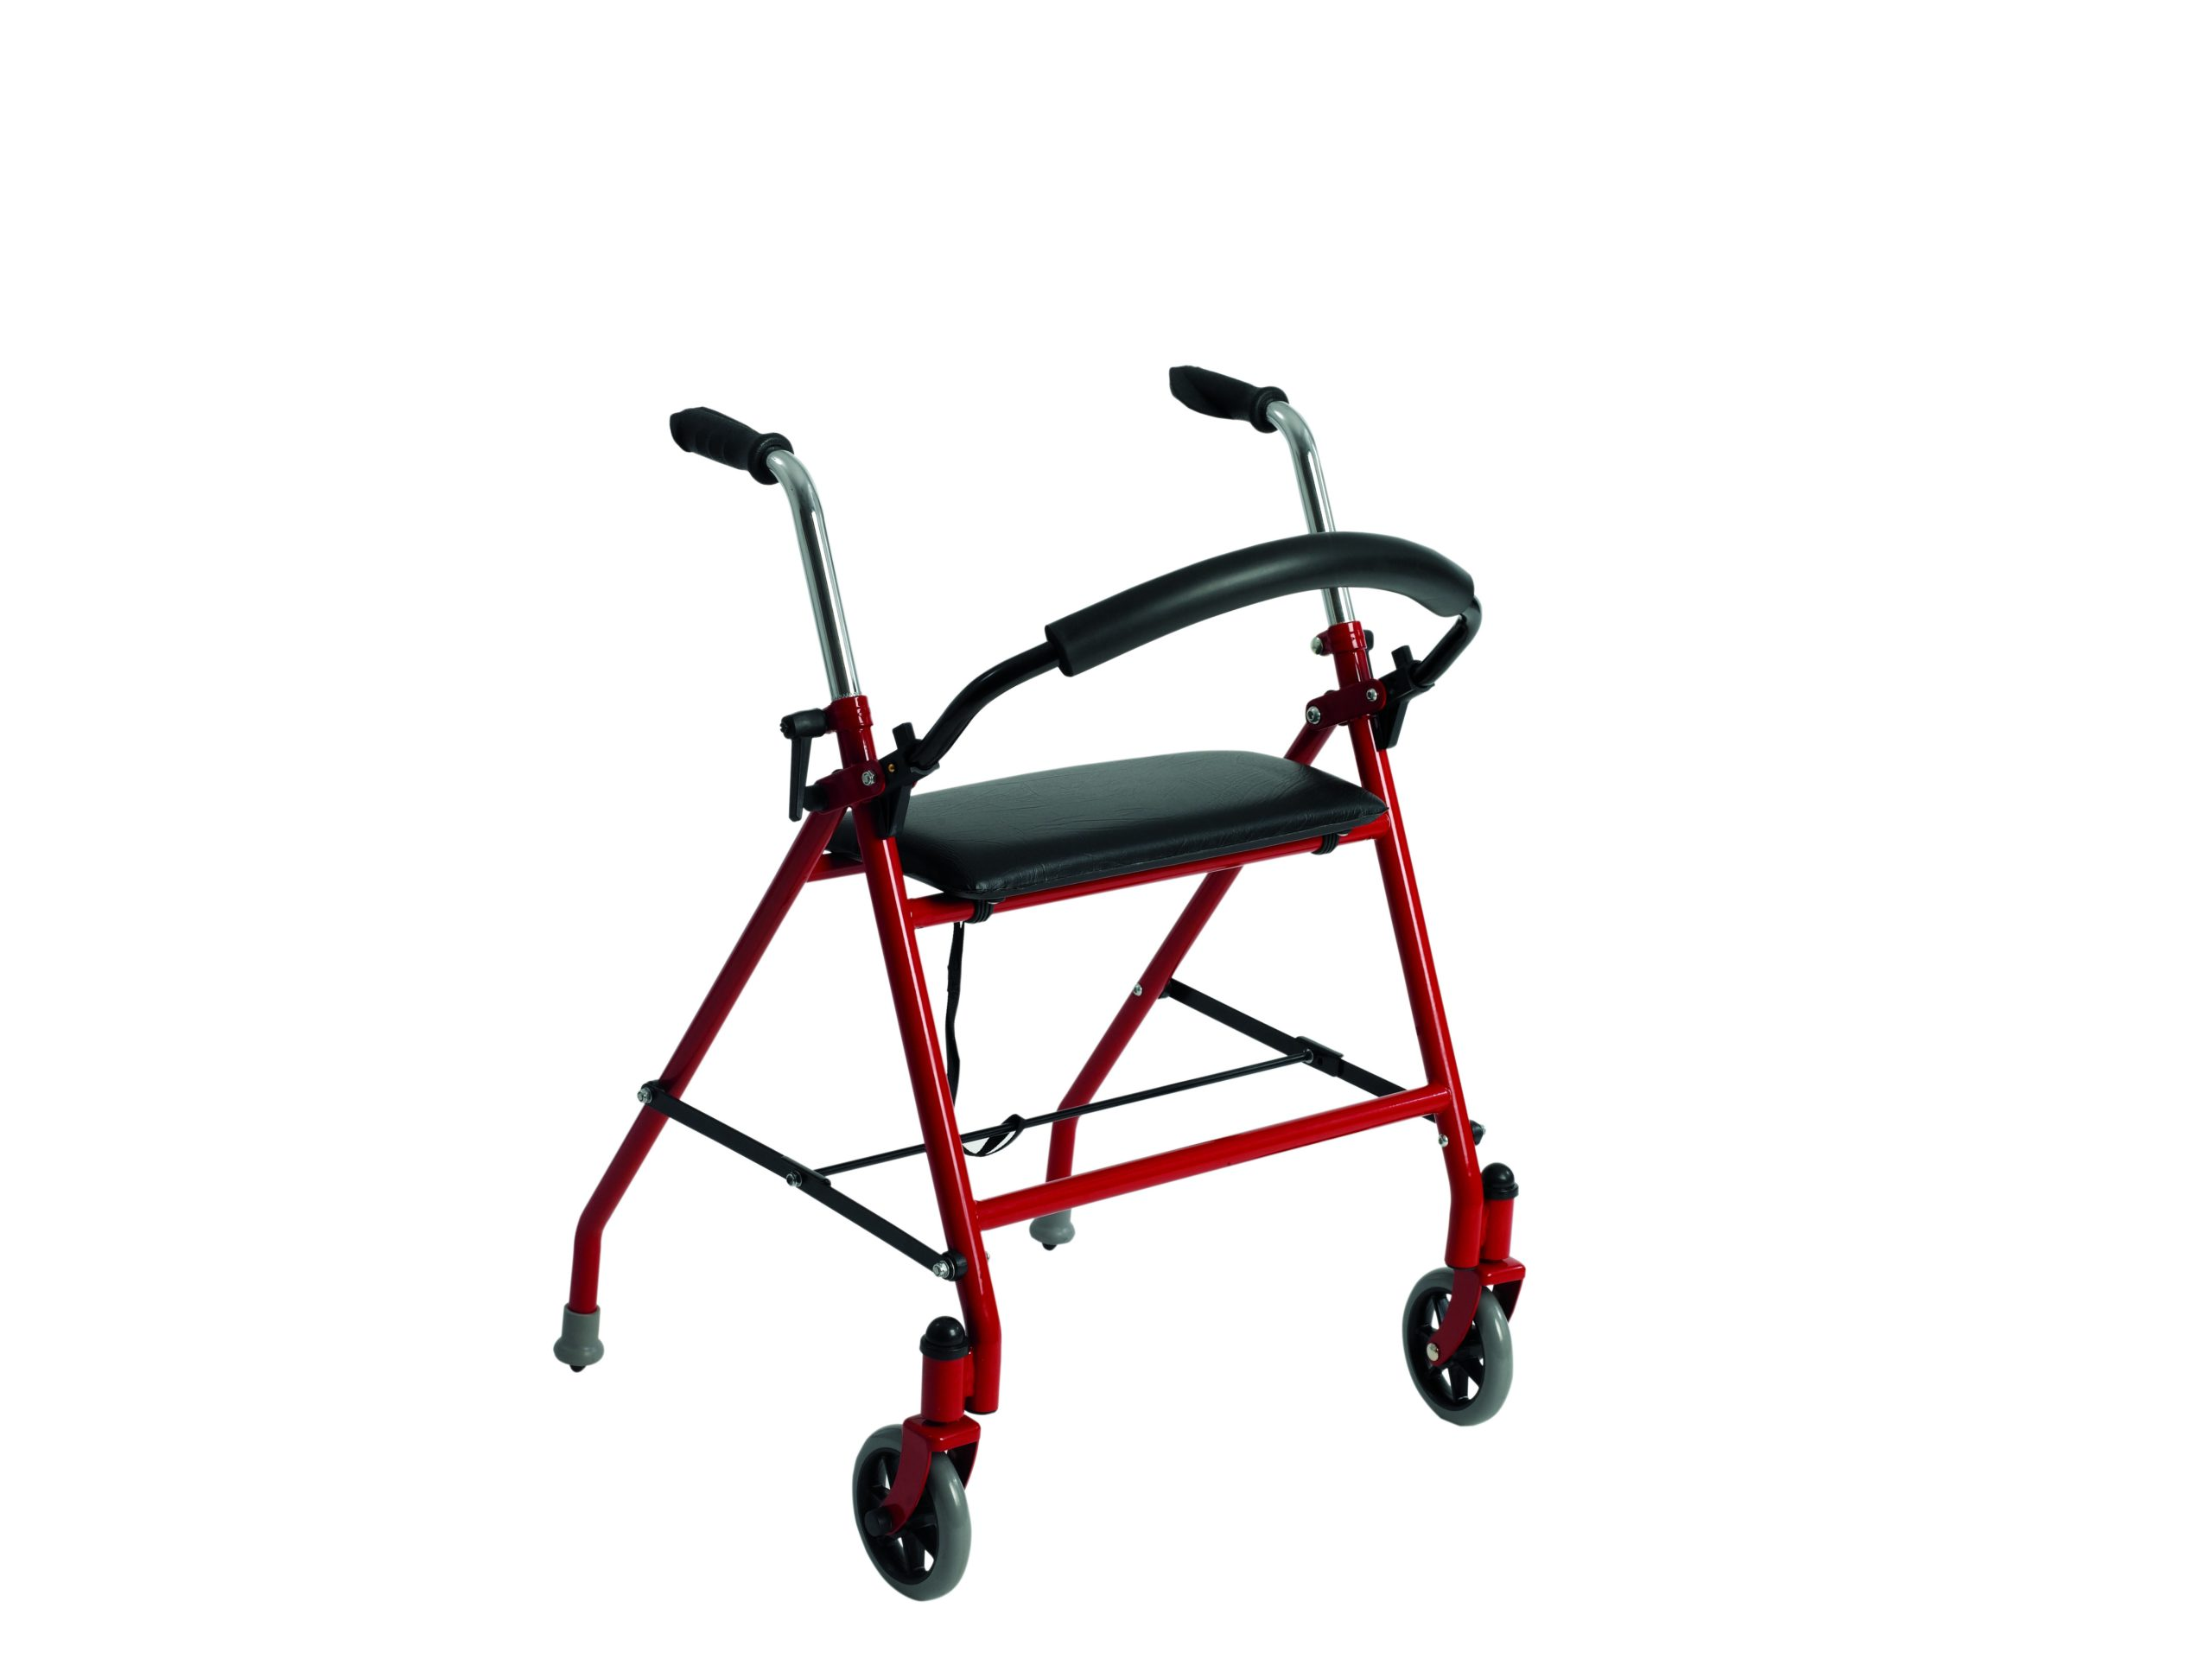 2 Wheeled Walker w/Seat, Blue - On The Mend Medical Supplies & Equipment